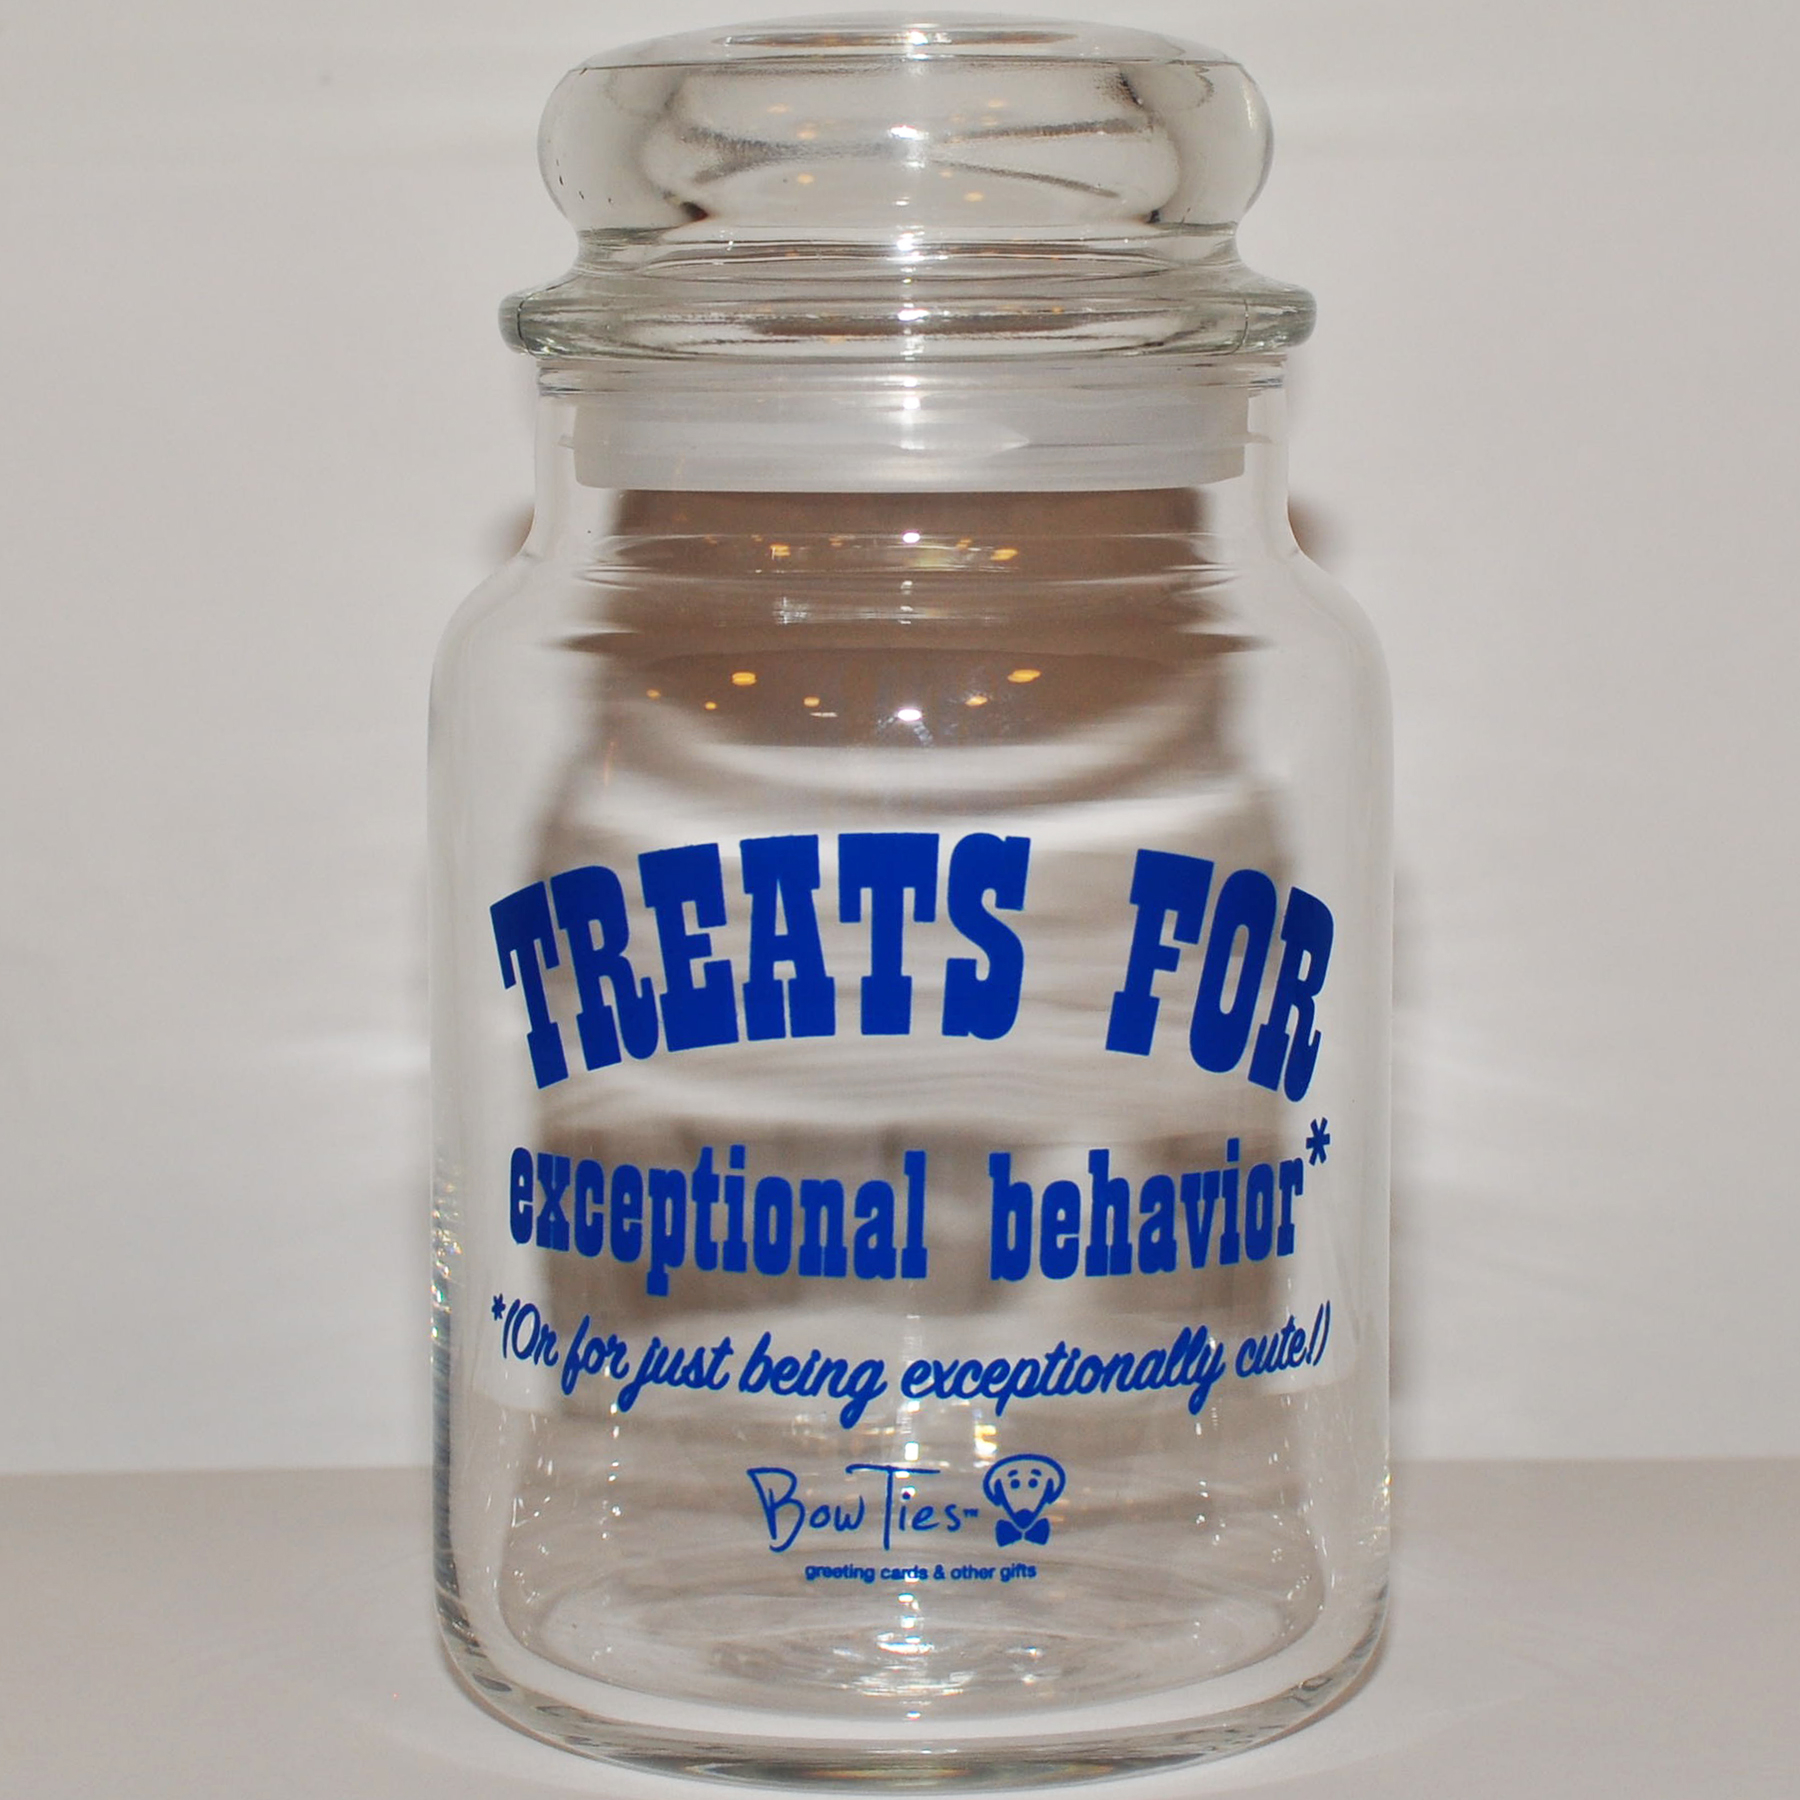 Treats for Exceptional Behavior – pet treat jar